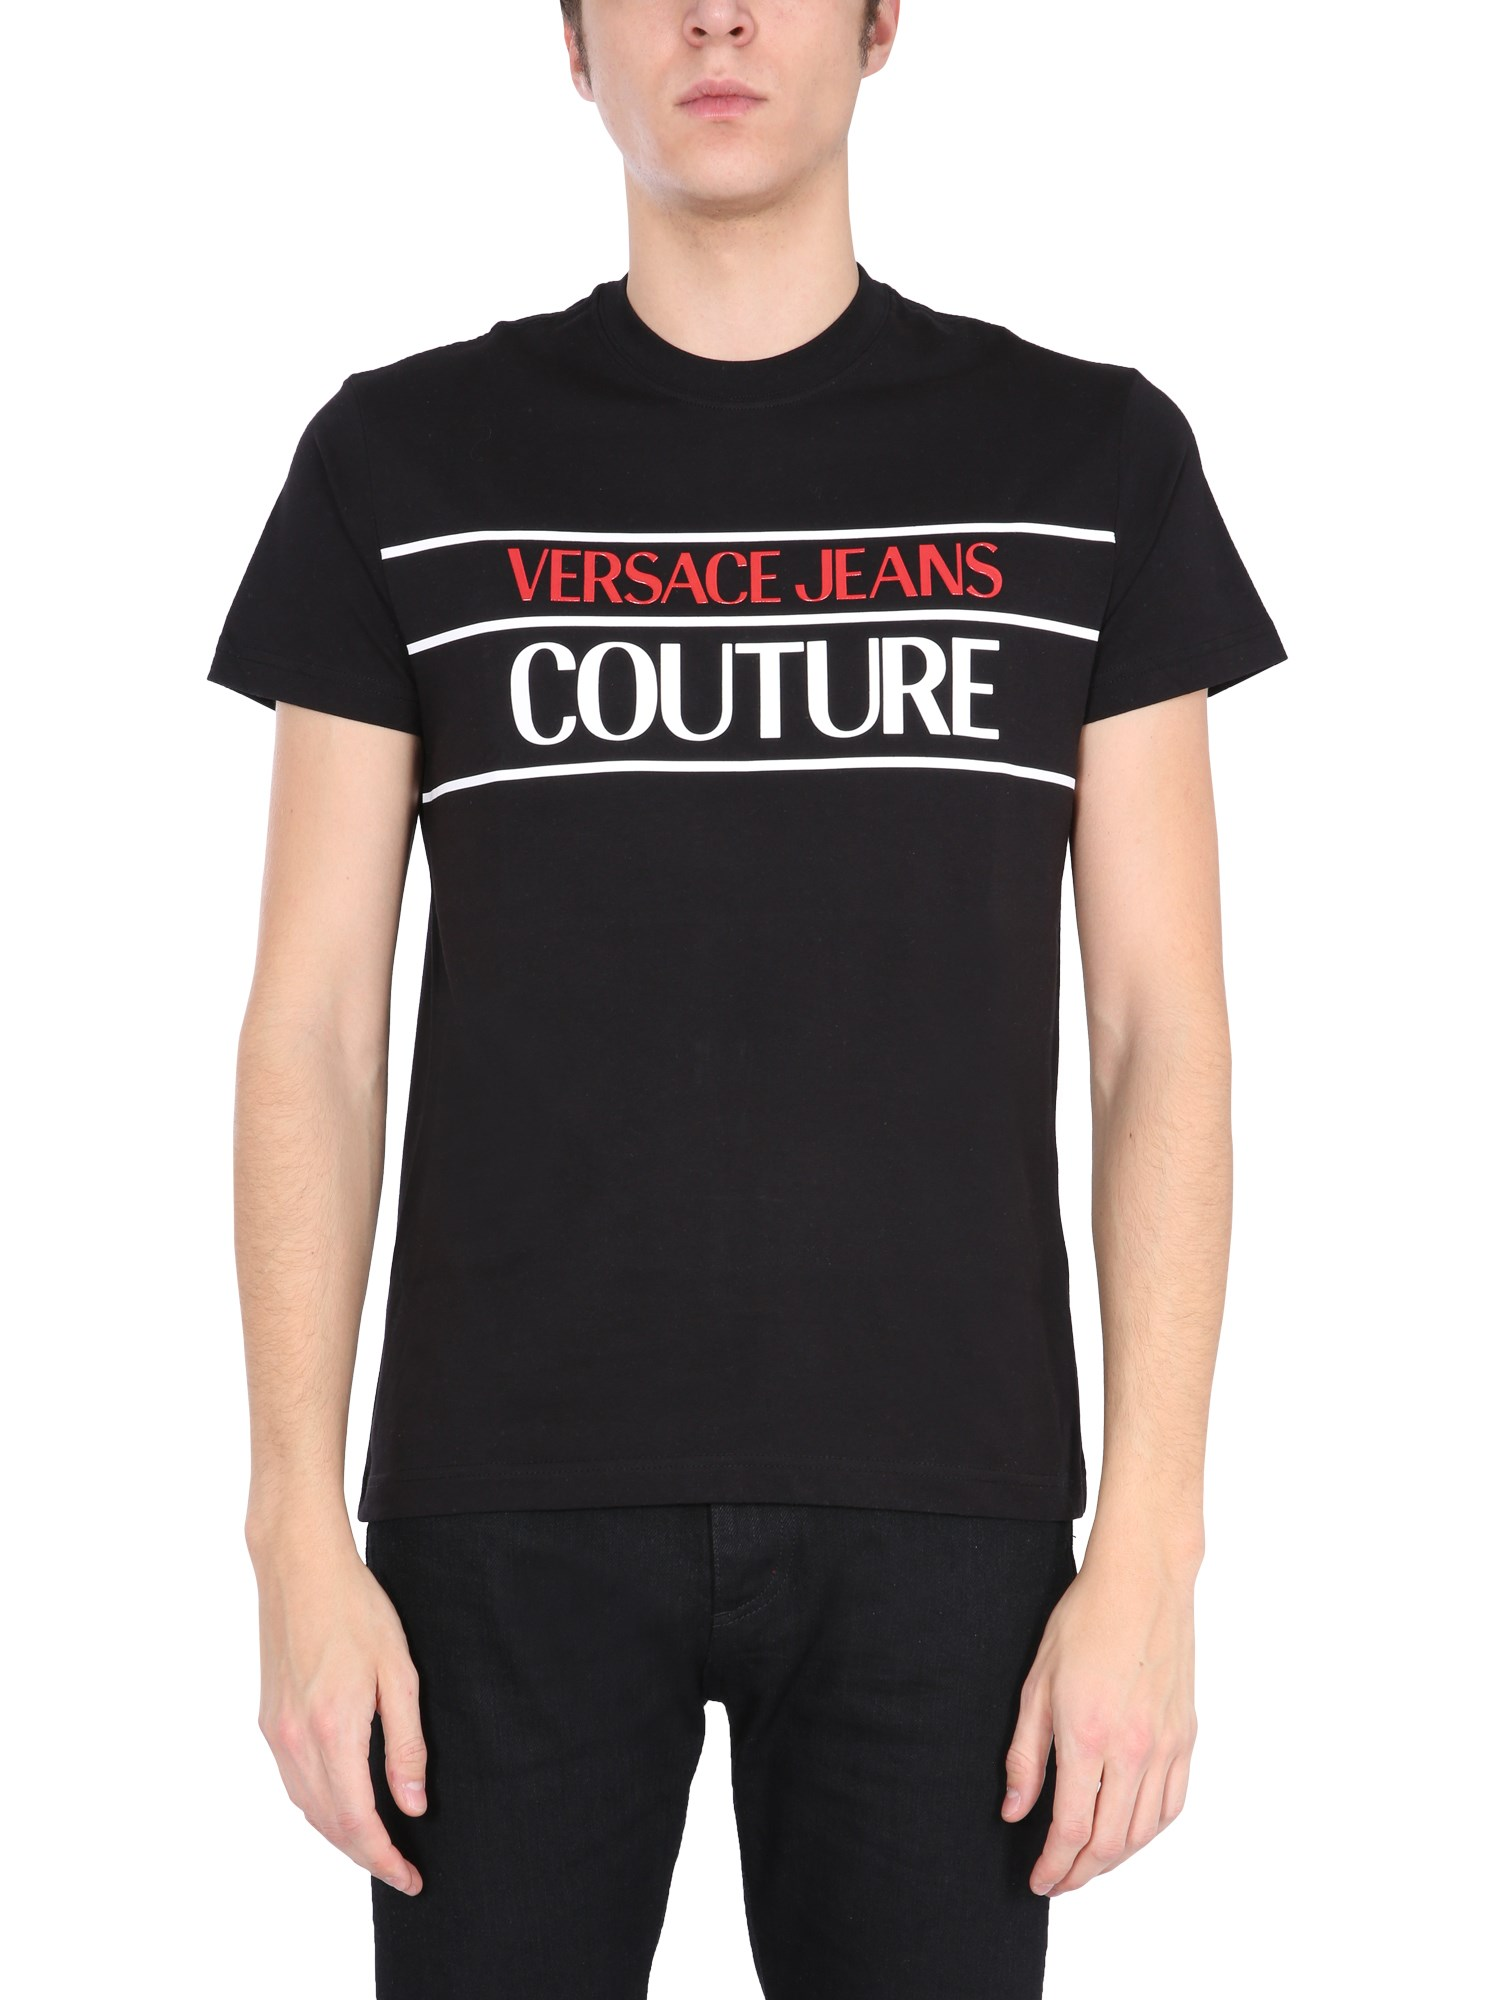 Versace Jeans Couture T-shirts T-SHIRT CON LOGO